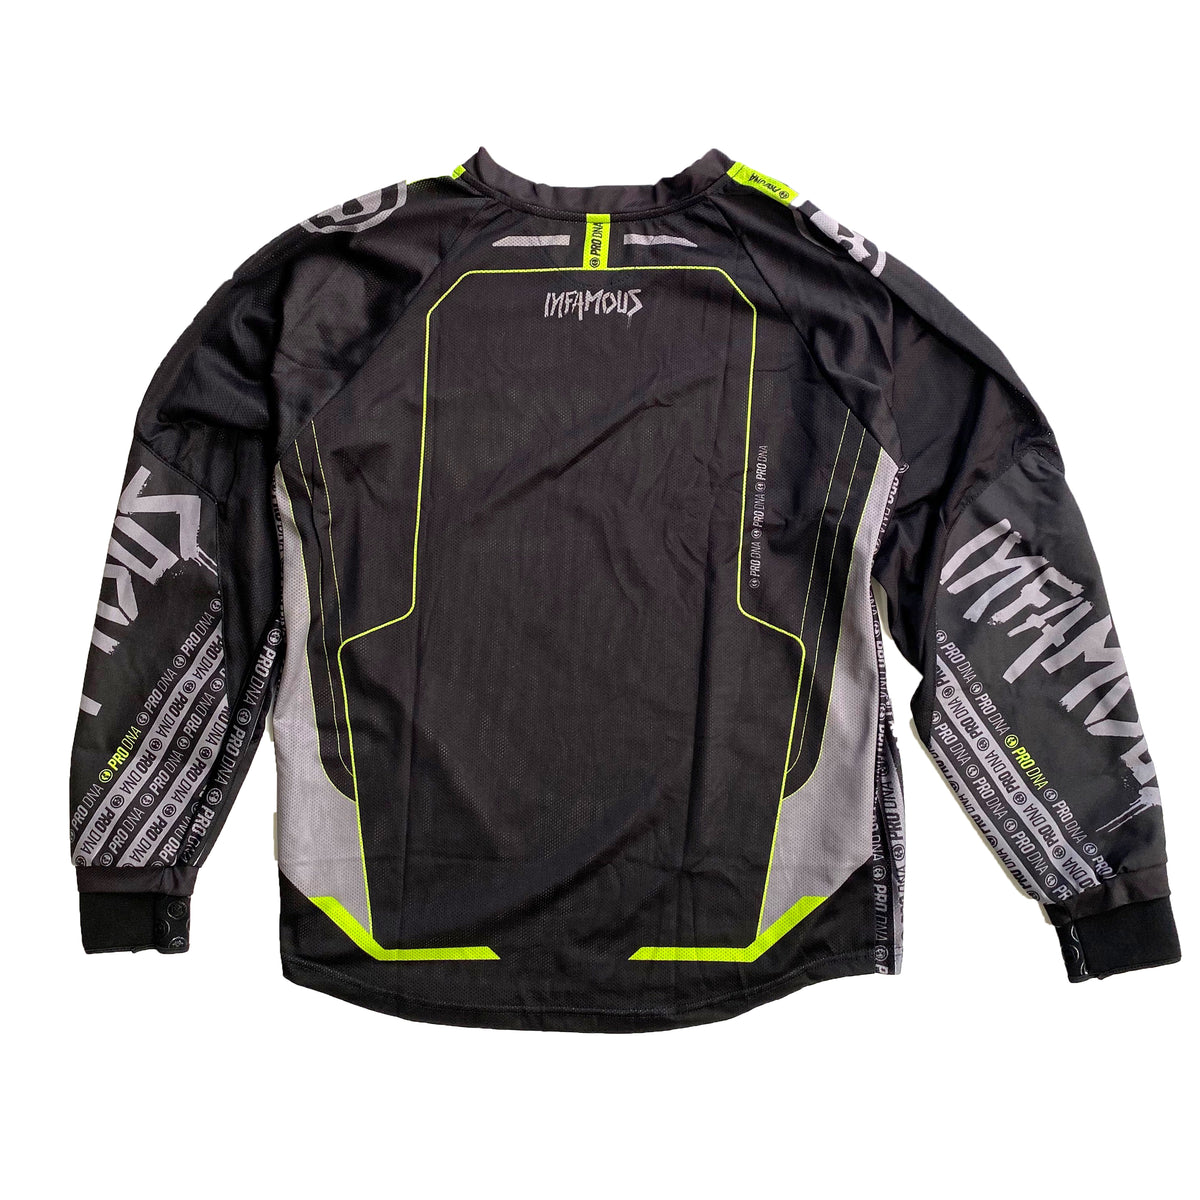 Infamous Skeleton Air Paintball Jersey